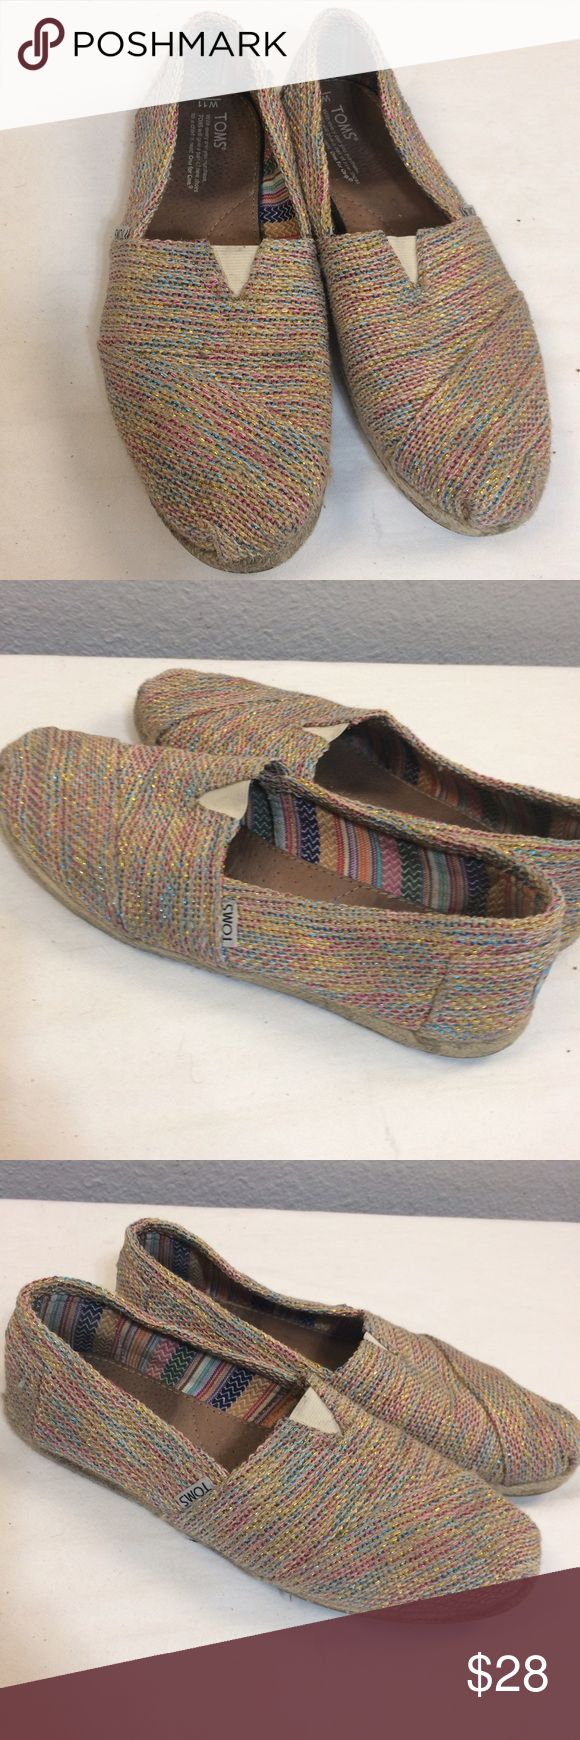 TOMS burlap and jute espadrilles-multicolor TOMS espadrilles with a jute detail around the soles. The material is burlap with multi colored threads woven through. Soles show some wear and so does the inside heel/ inner sole. Zoom pics to see details. Well loved and worn but great casual slip ons! TOMS Shoes Flats & Loafers